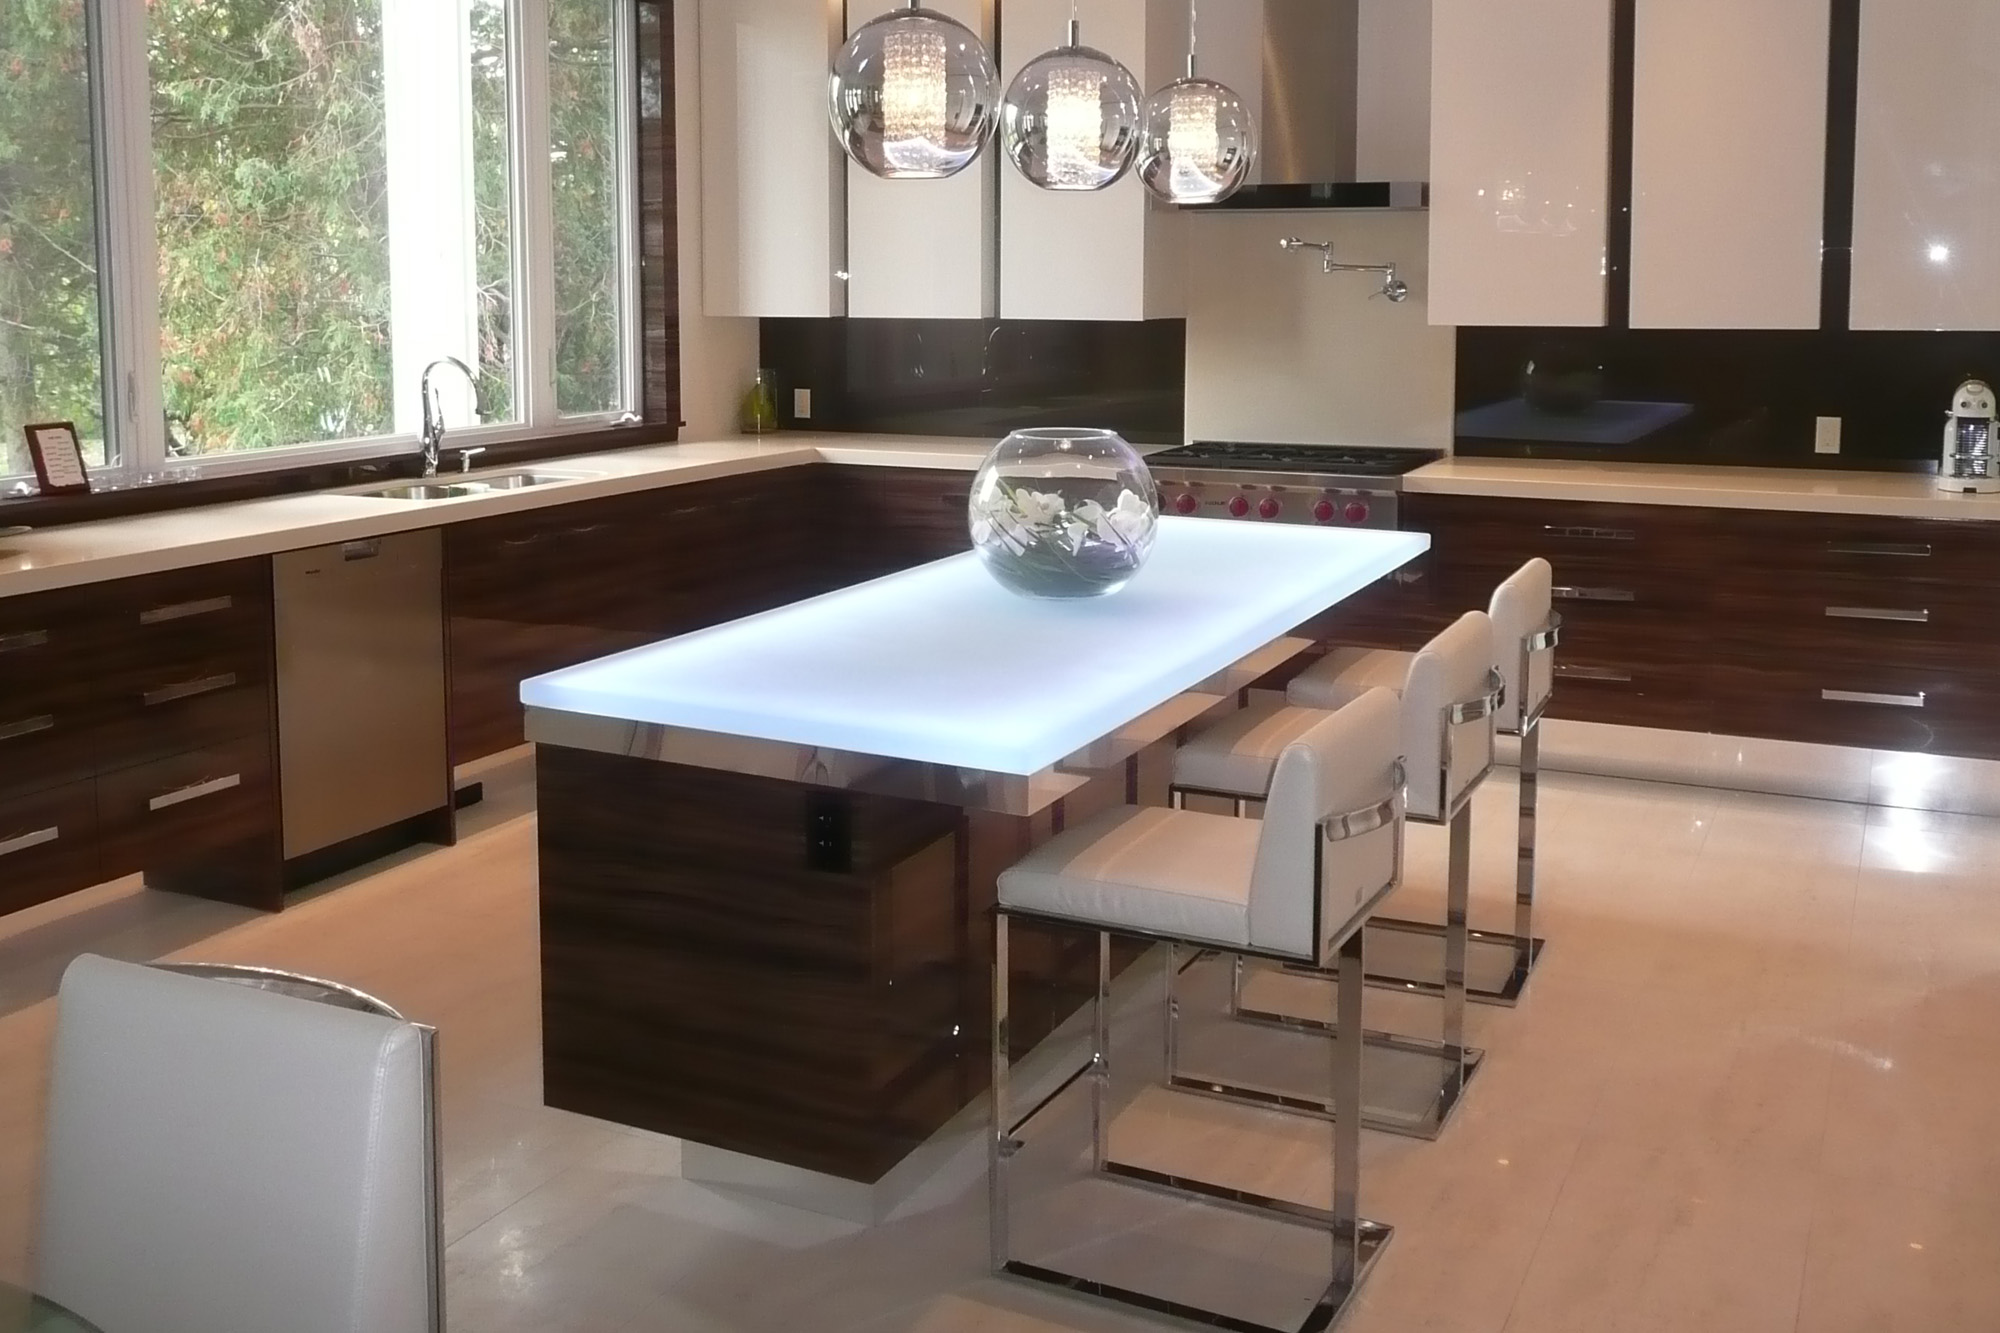 glass kitchen island 6 popular glass countertop types cgd glass countertops 11887